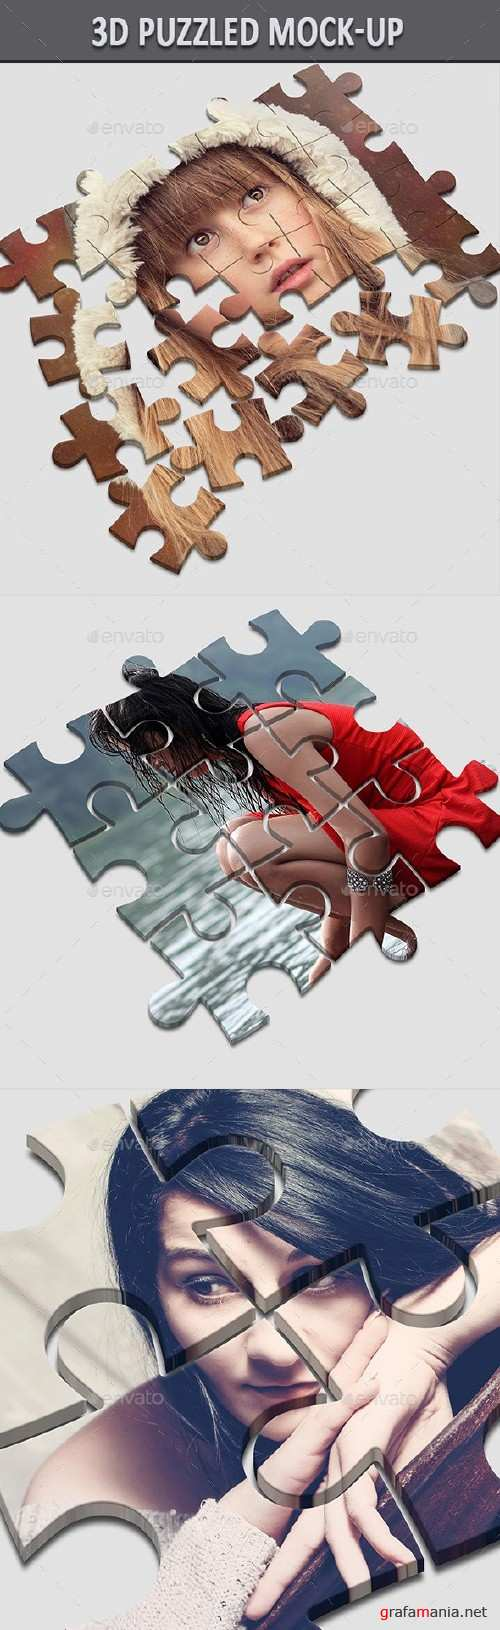 3D Puzzled Mock-Up - 16721278